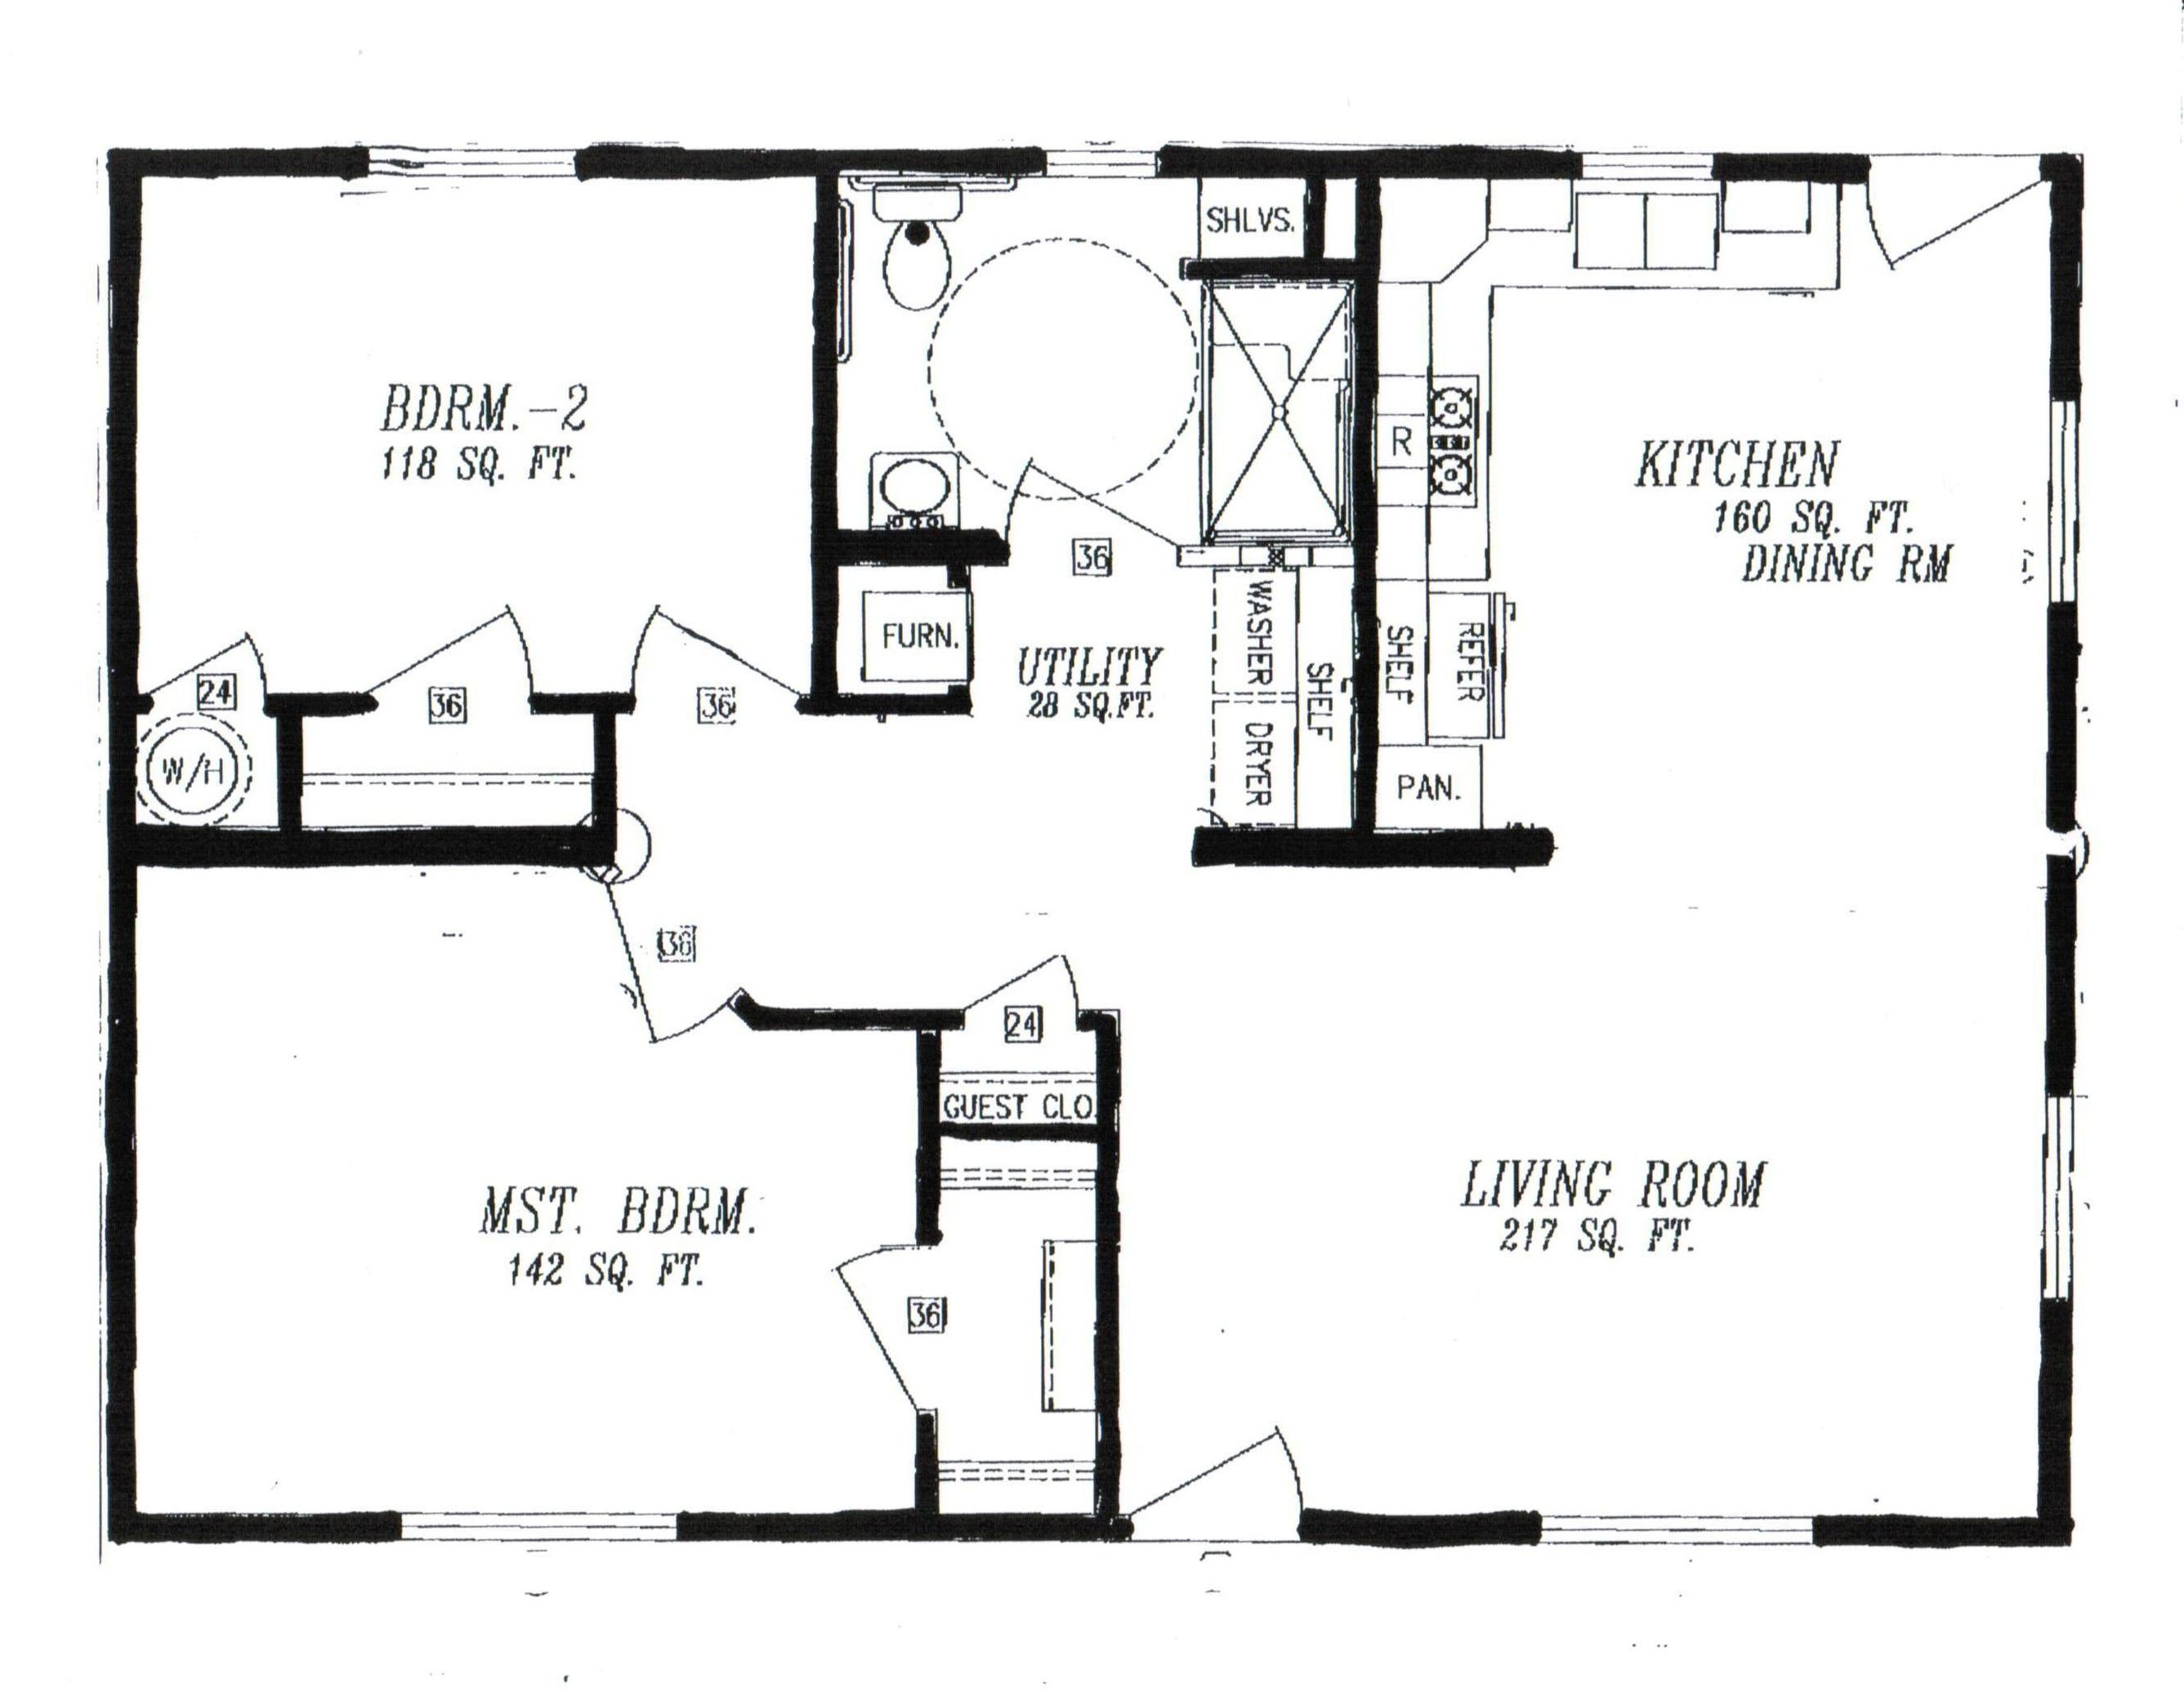 ada living room layout